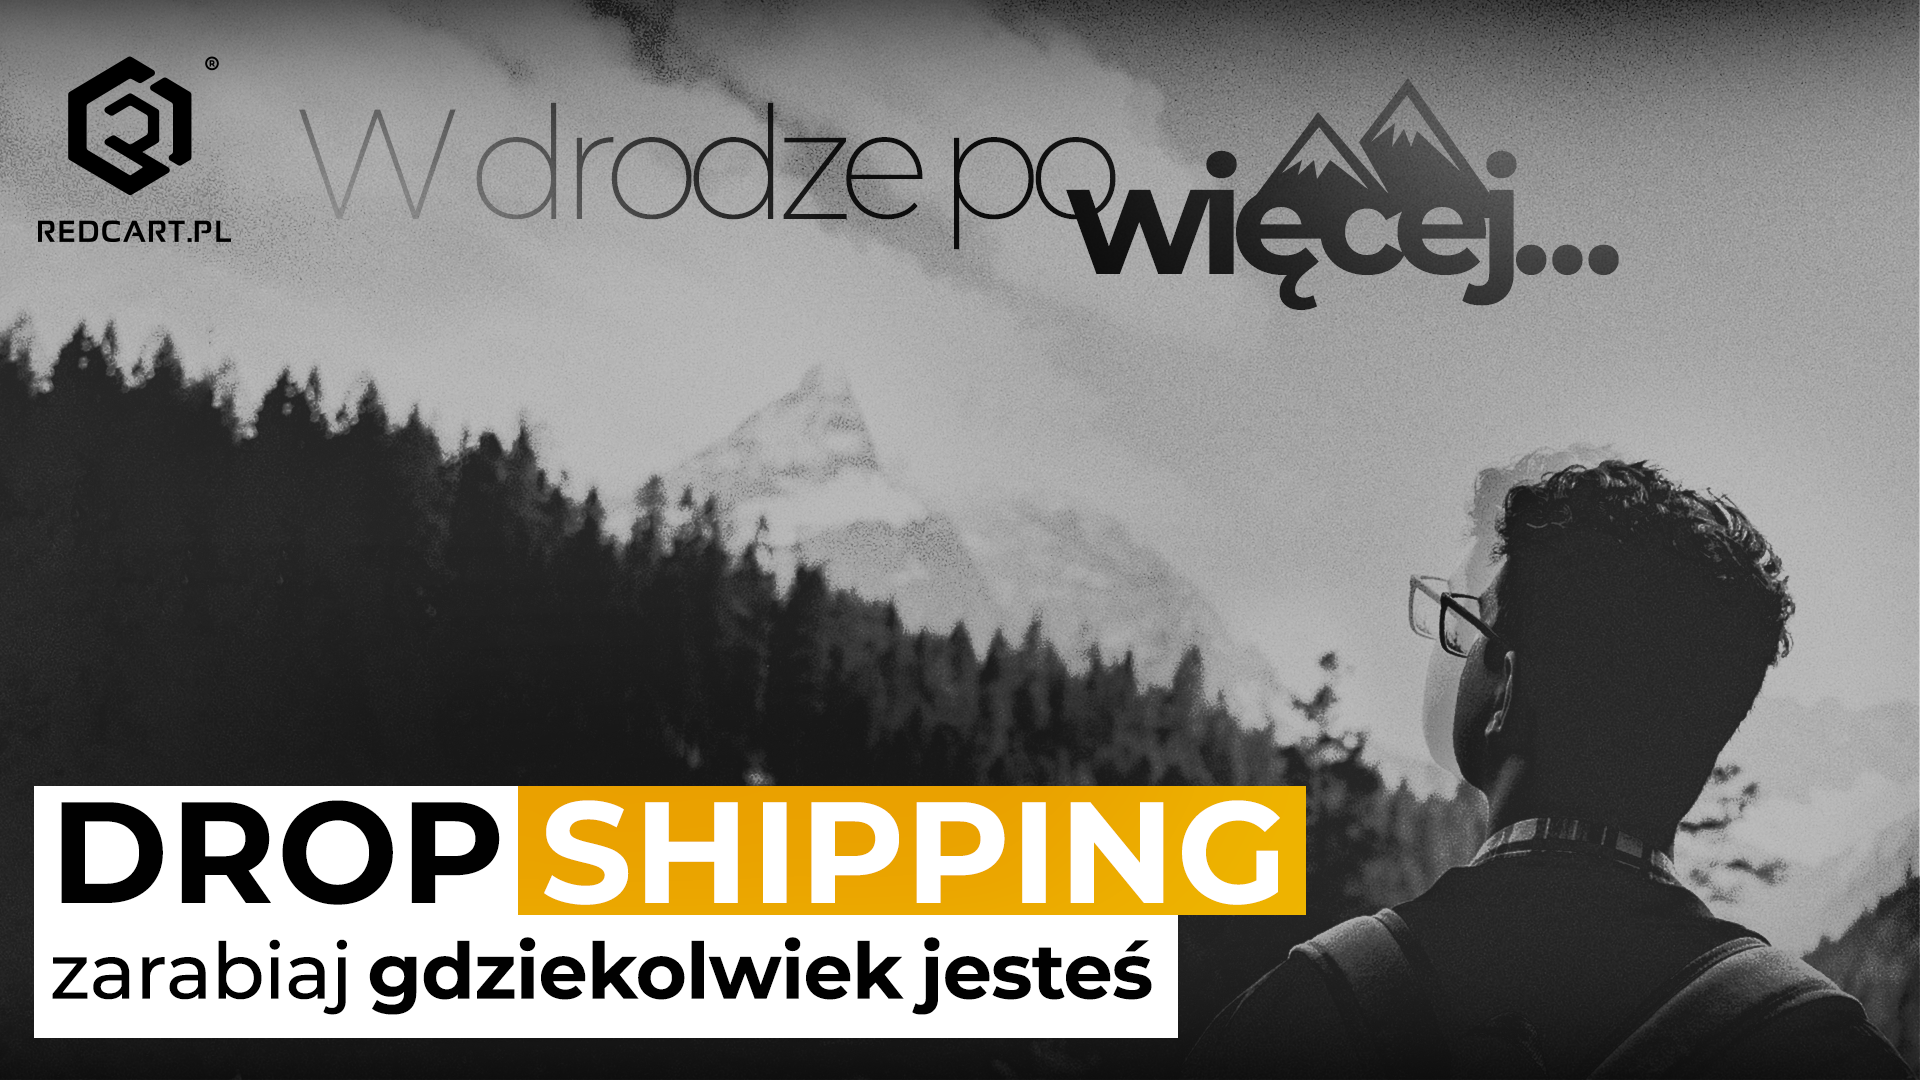 dropshipping sklep internetowy redcart